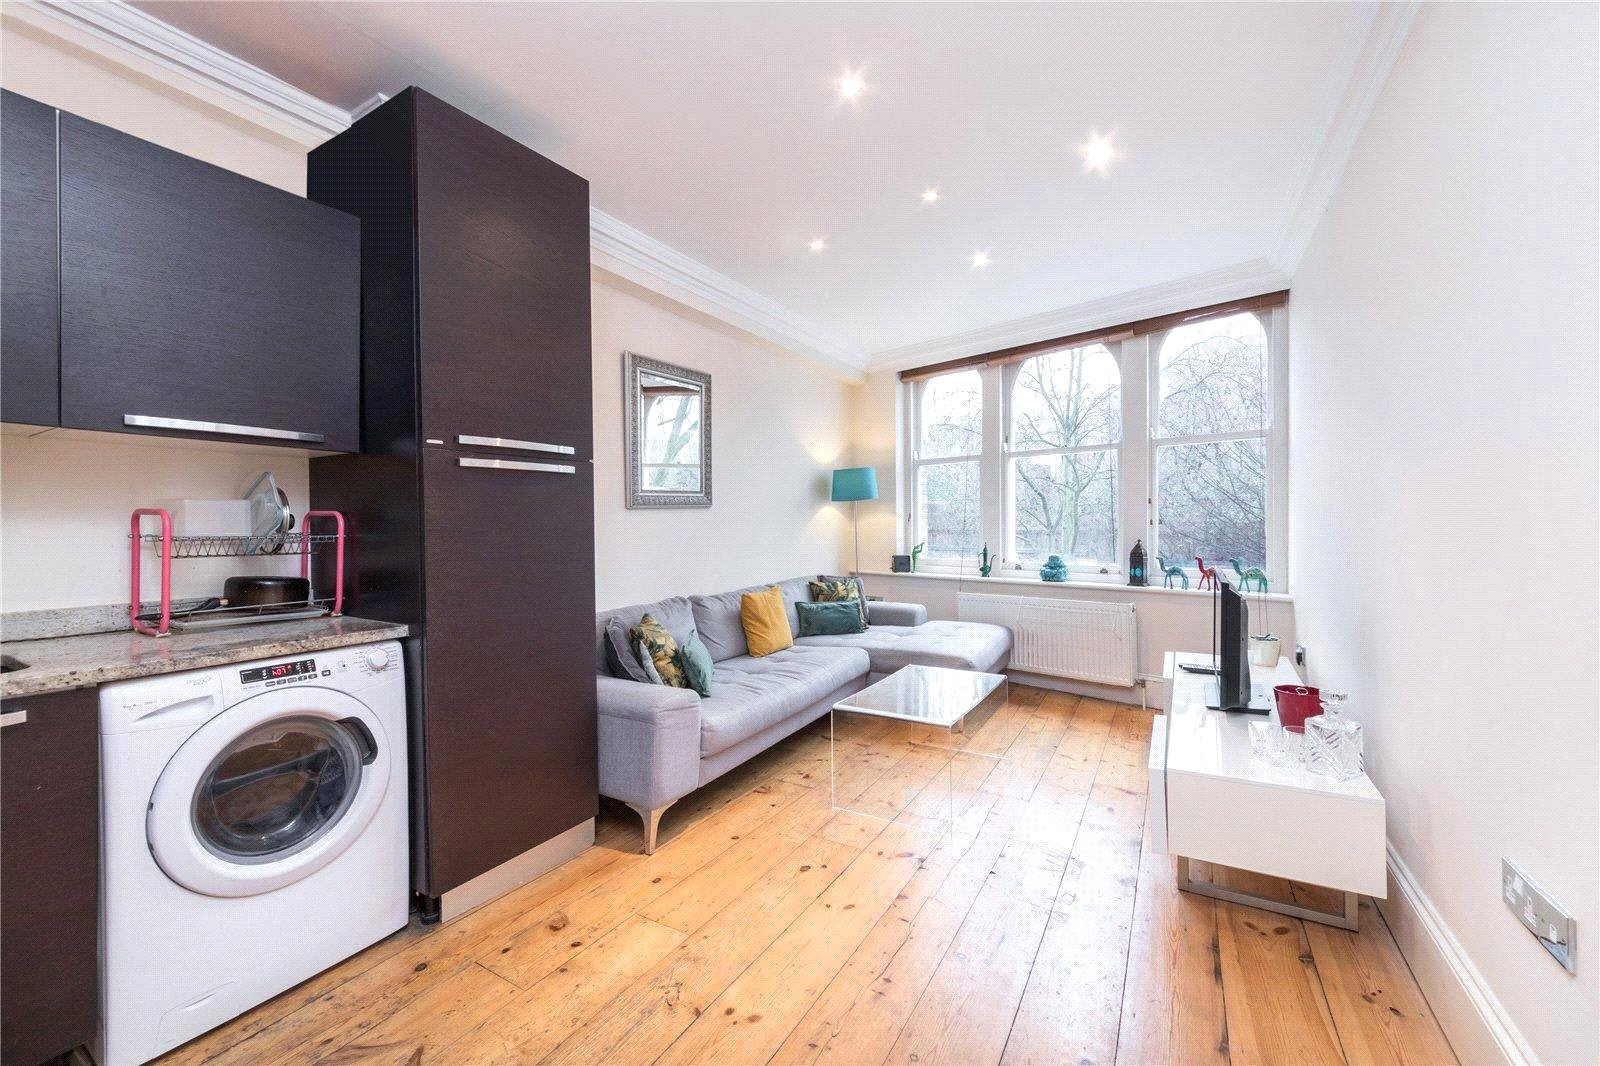 2 bed apartment to rent in Arsenal, N5 1LU  - Property Image 4